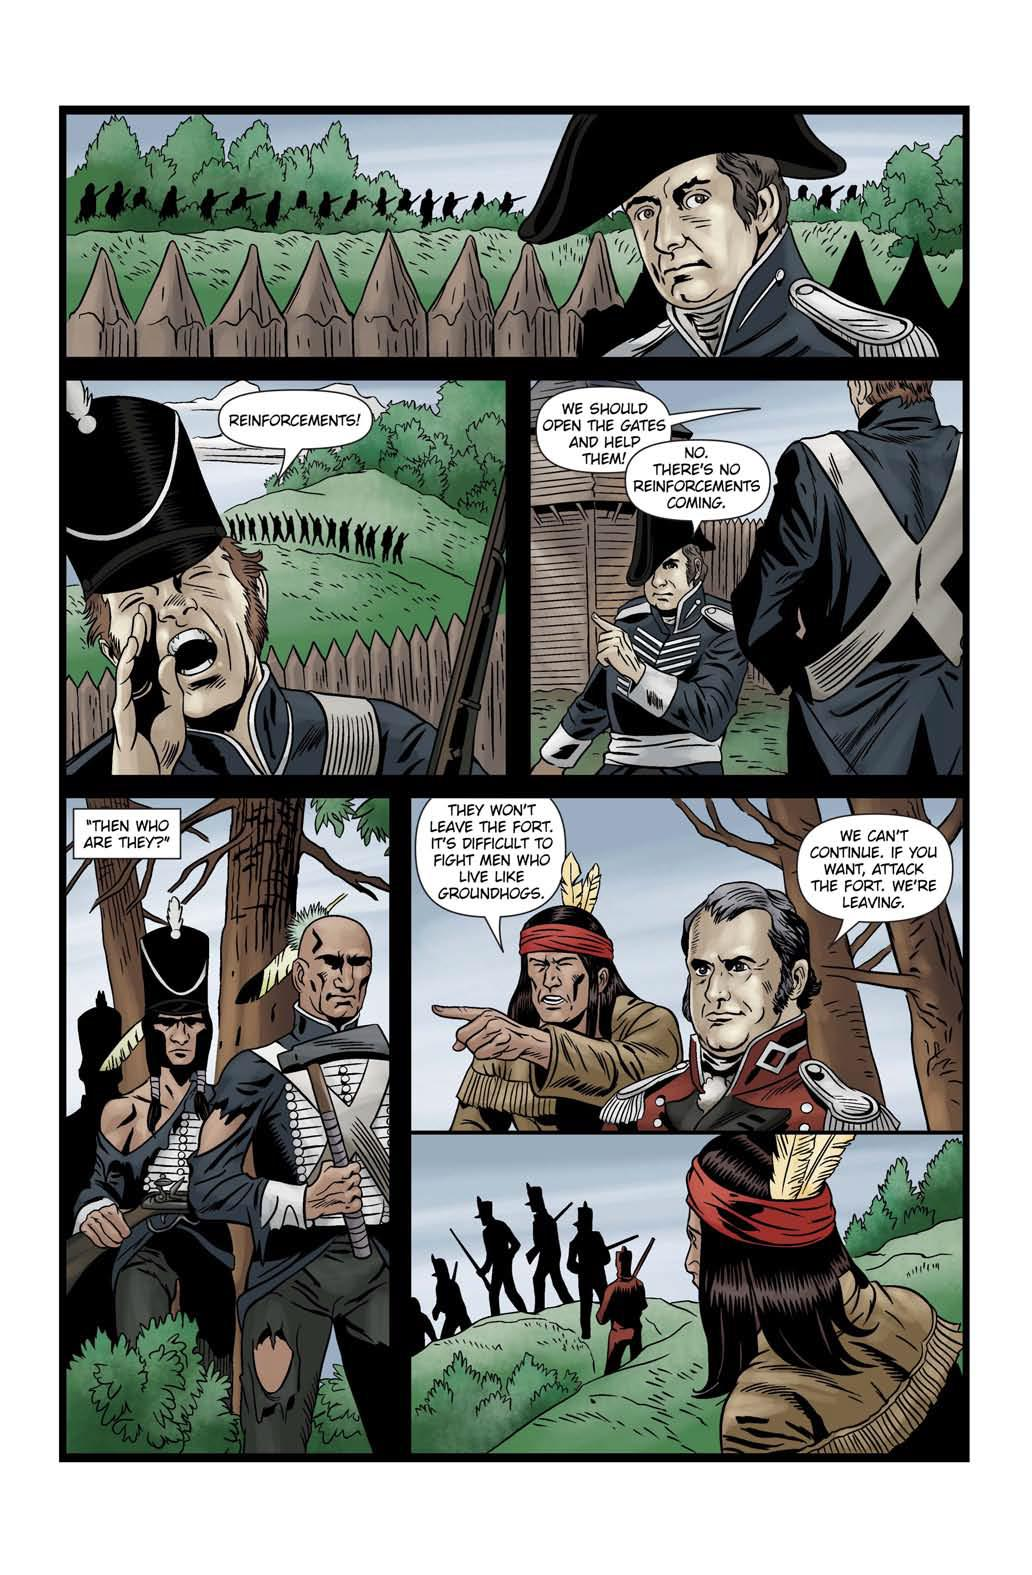 tecumseh and the war of 1812 essay Free essay: war of 1812 essay susan henderson ib hota mr tecumseh and his war of 1812 essay the war of 1812 was one of the most insignificant wars in us.